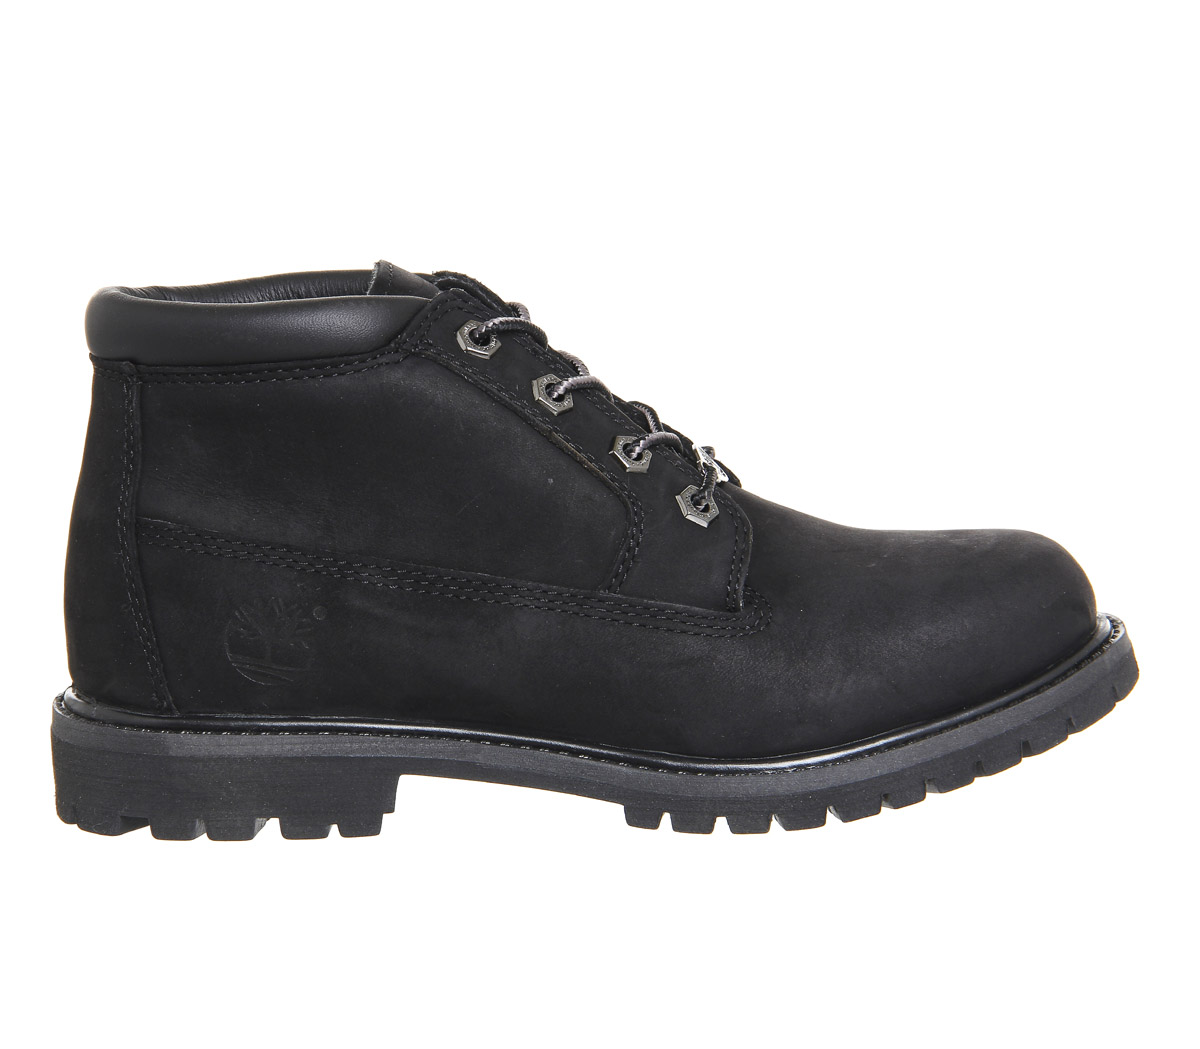 3170a830fb8c Details about Womens Timberland Nellie Chukka Double Waterproof Boots Black  Mono Boots